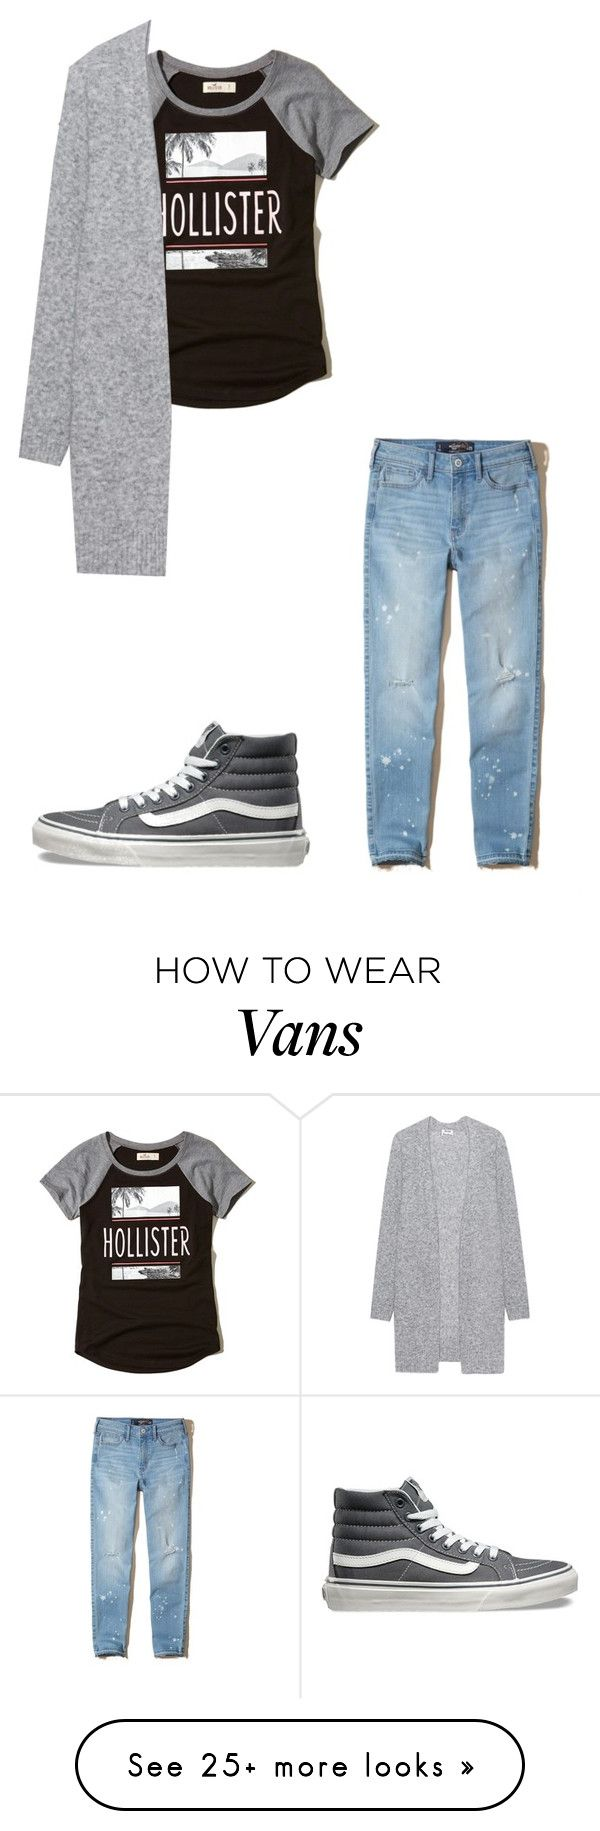 """""""Untitled #249"""" by lockwoodzaki on Polyvore featuring Hollister Co., Vans and Acne Studios"""